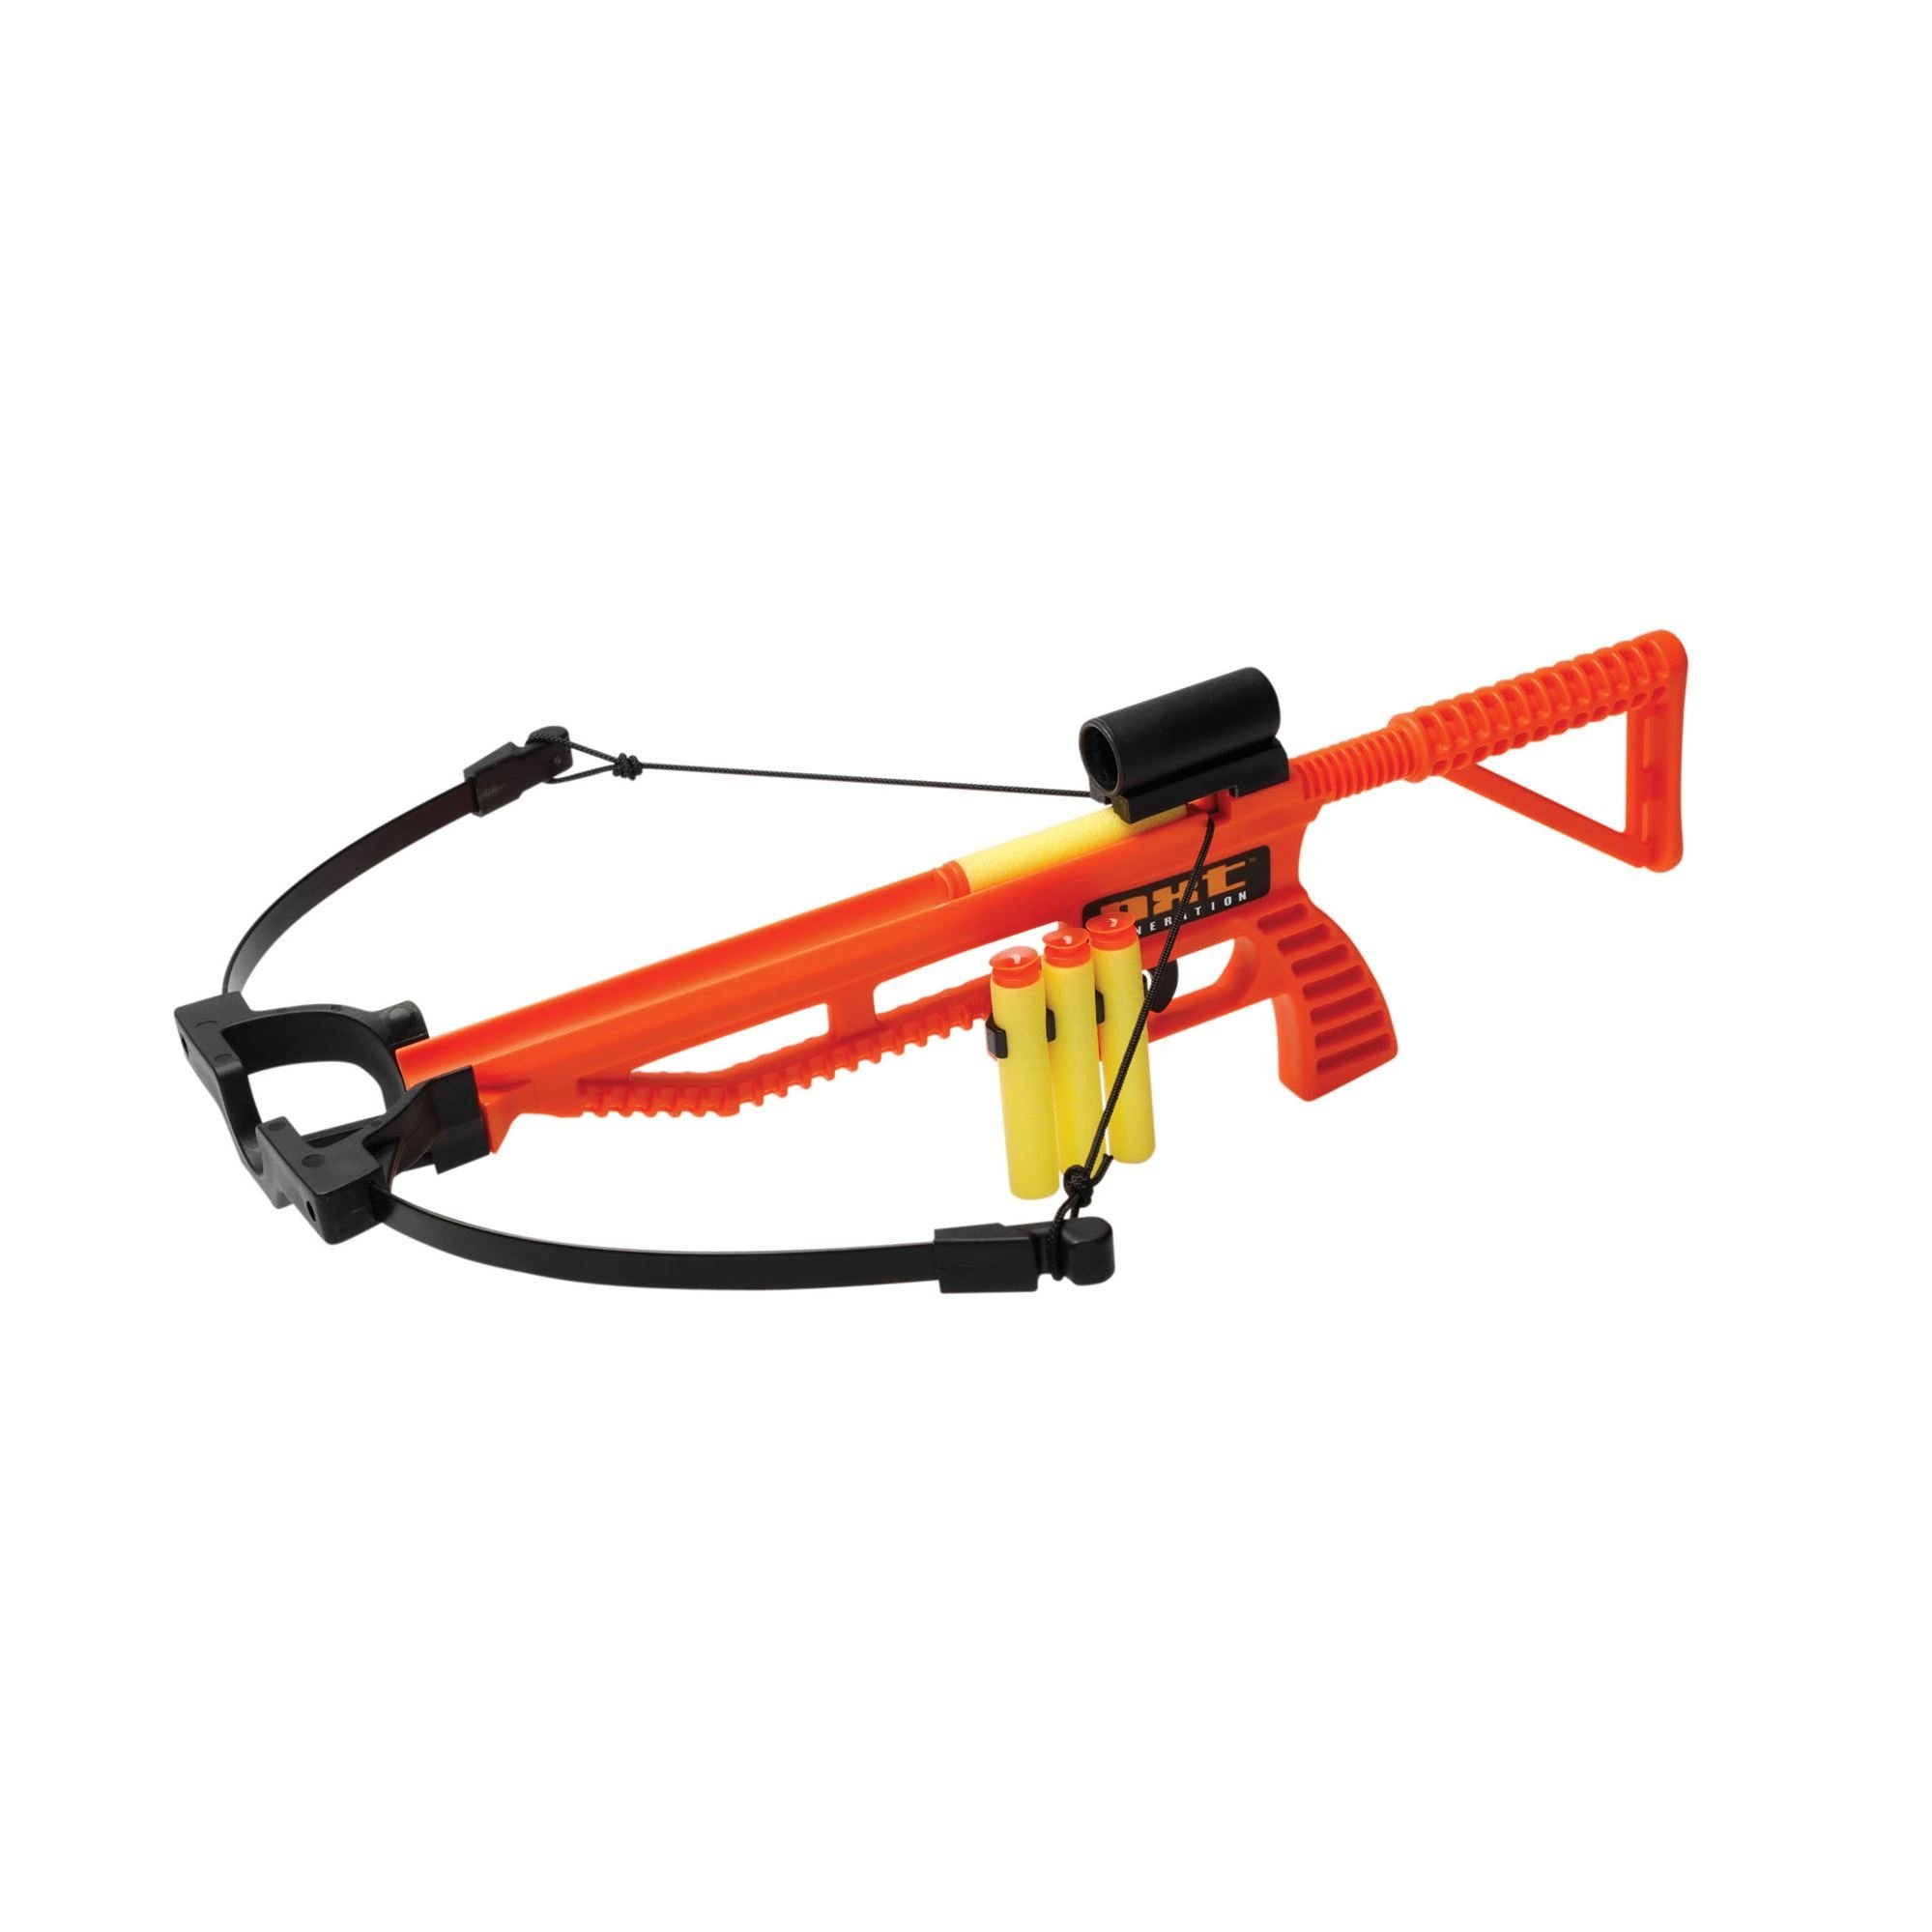 NXT Generation Orange Blaze Tactical Crossbow, Target, and 3 Foam Suction Cup Projectiles - Archery Target Practice Toy for Teens